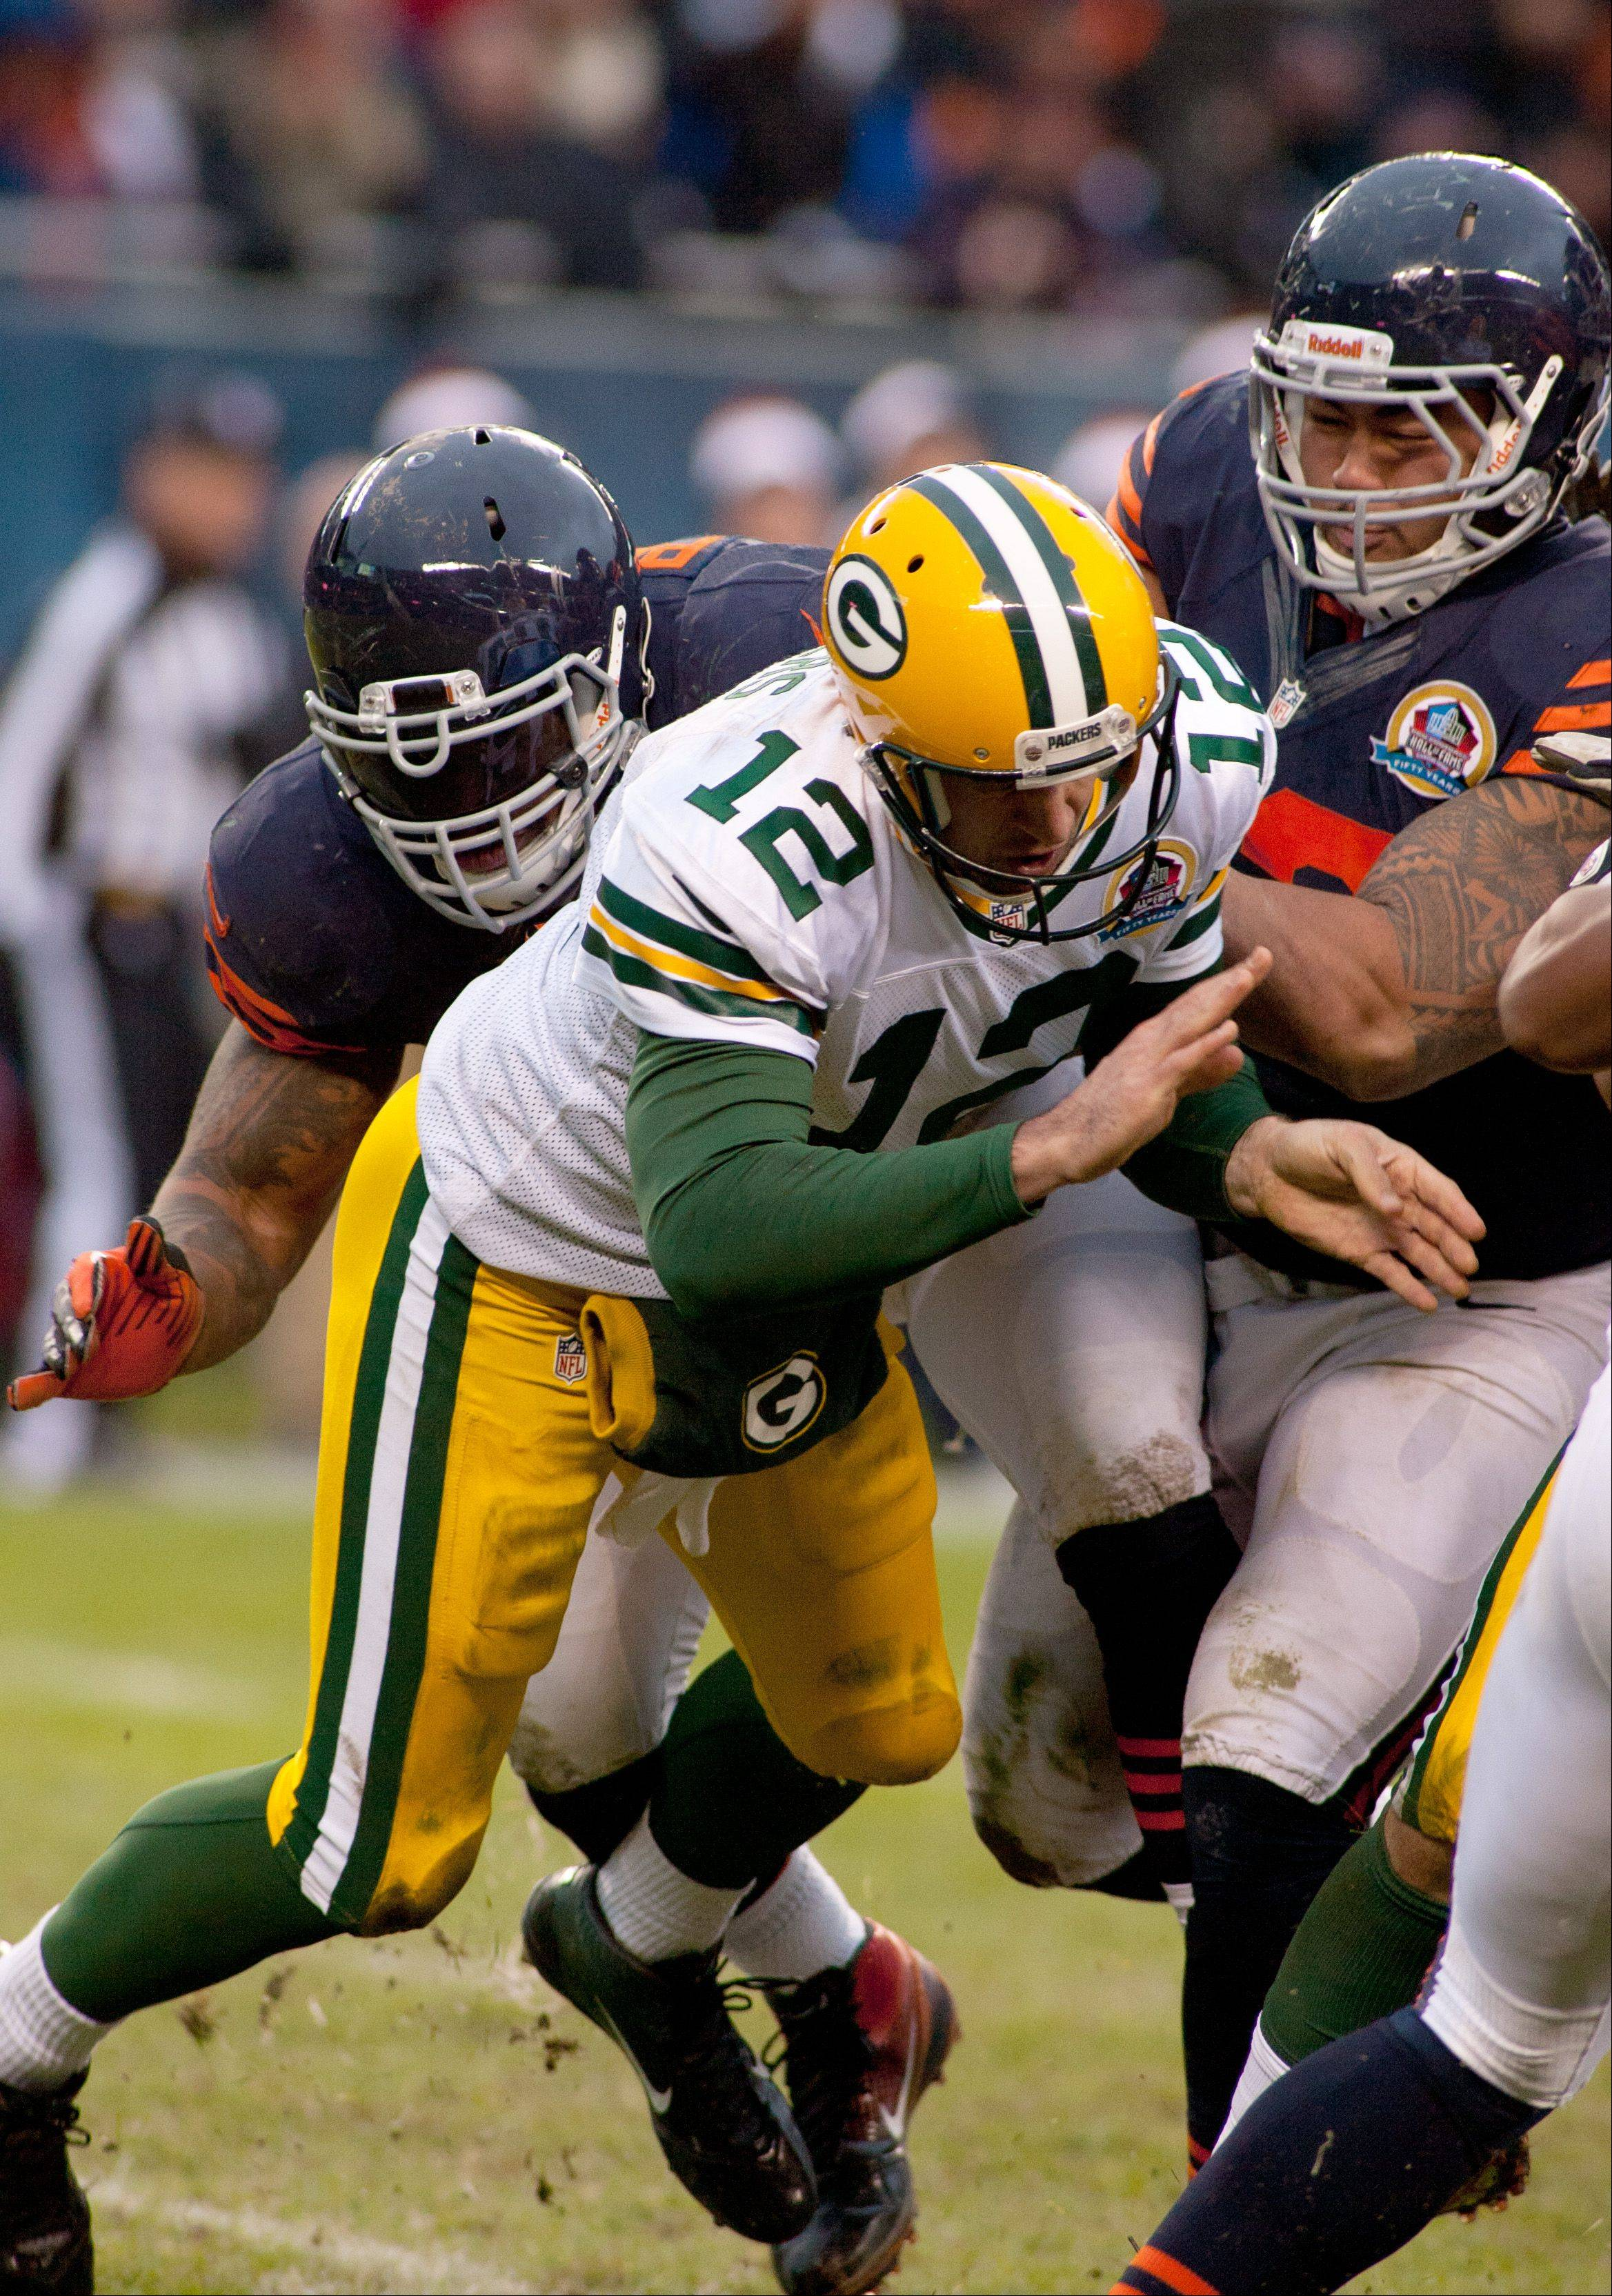 The Packer's Aaron Rodgers is hit by the Bears' Julius Peppers, who was called for roughing the passer on the play, during Sunday's game at Soldier Field in Chicago.